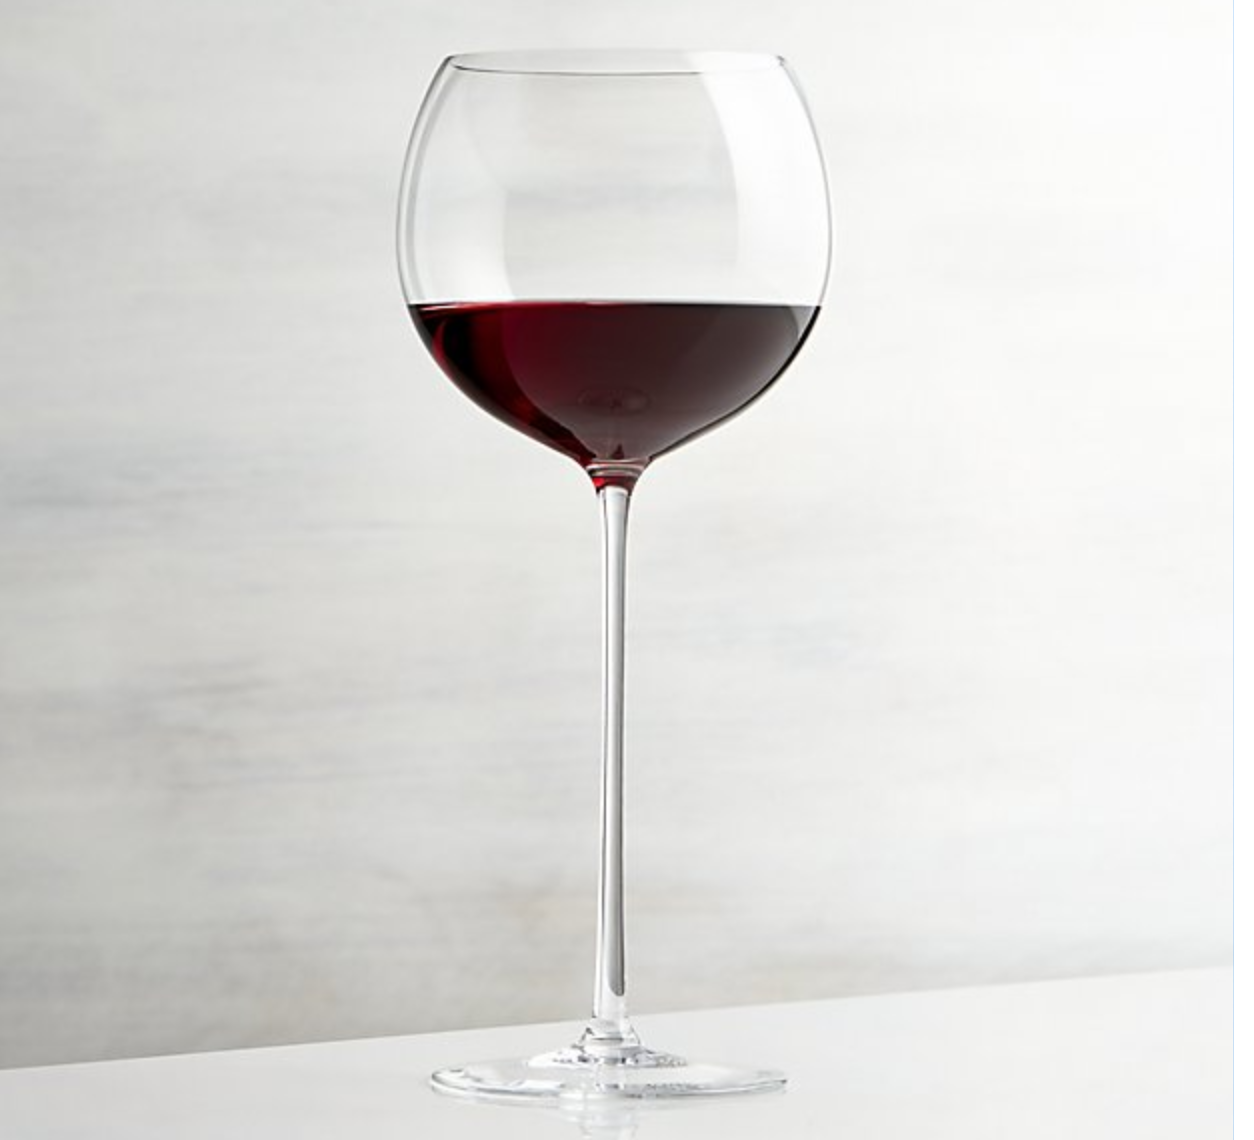 Camille Long Stem Red Wine Glass - The Olivia Pope wine glass! Elegant and timeless.